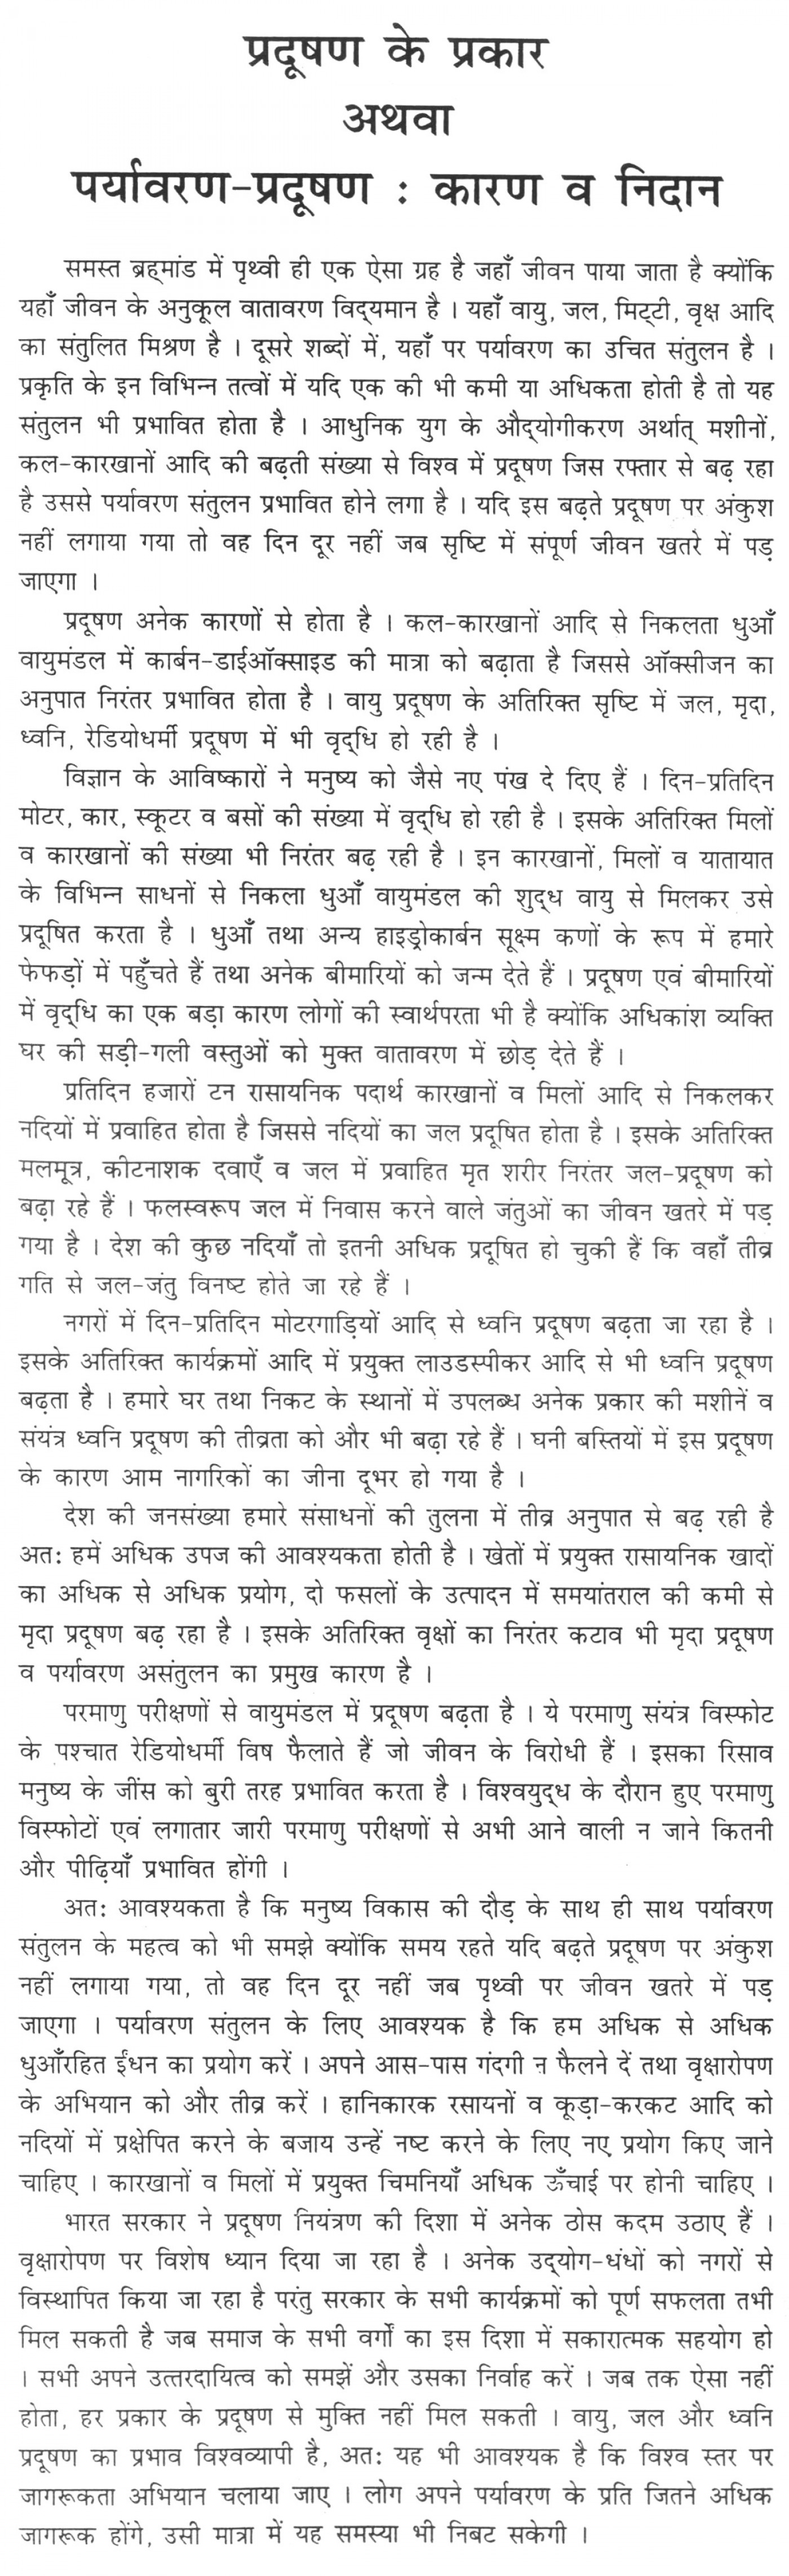 014 Good Habits Essay In Hindi Exceptional Healthy Eating Reading Is A Habit 1400